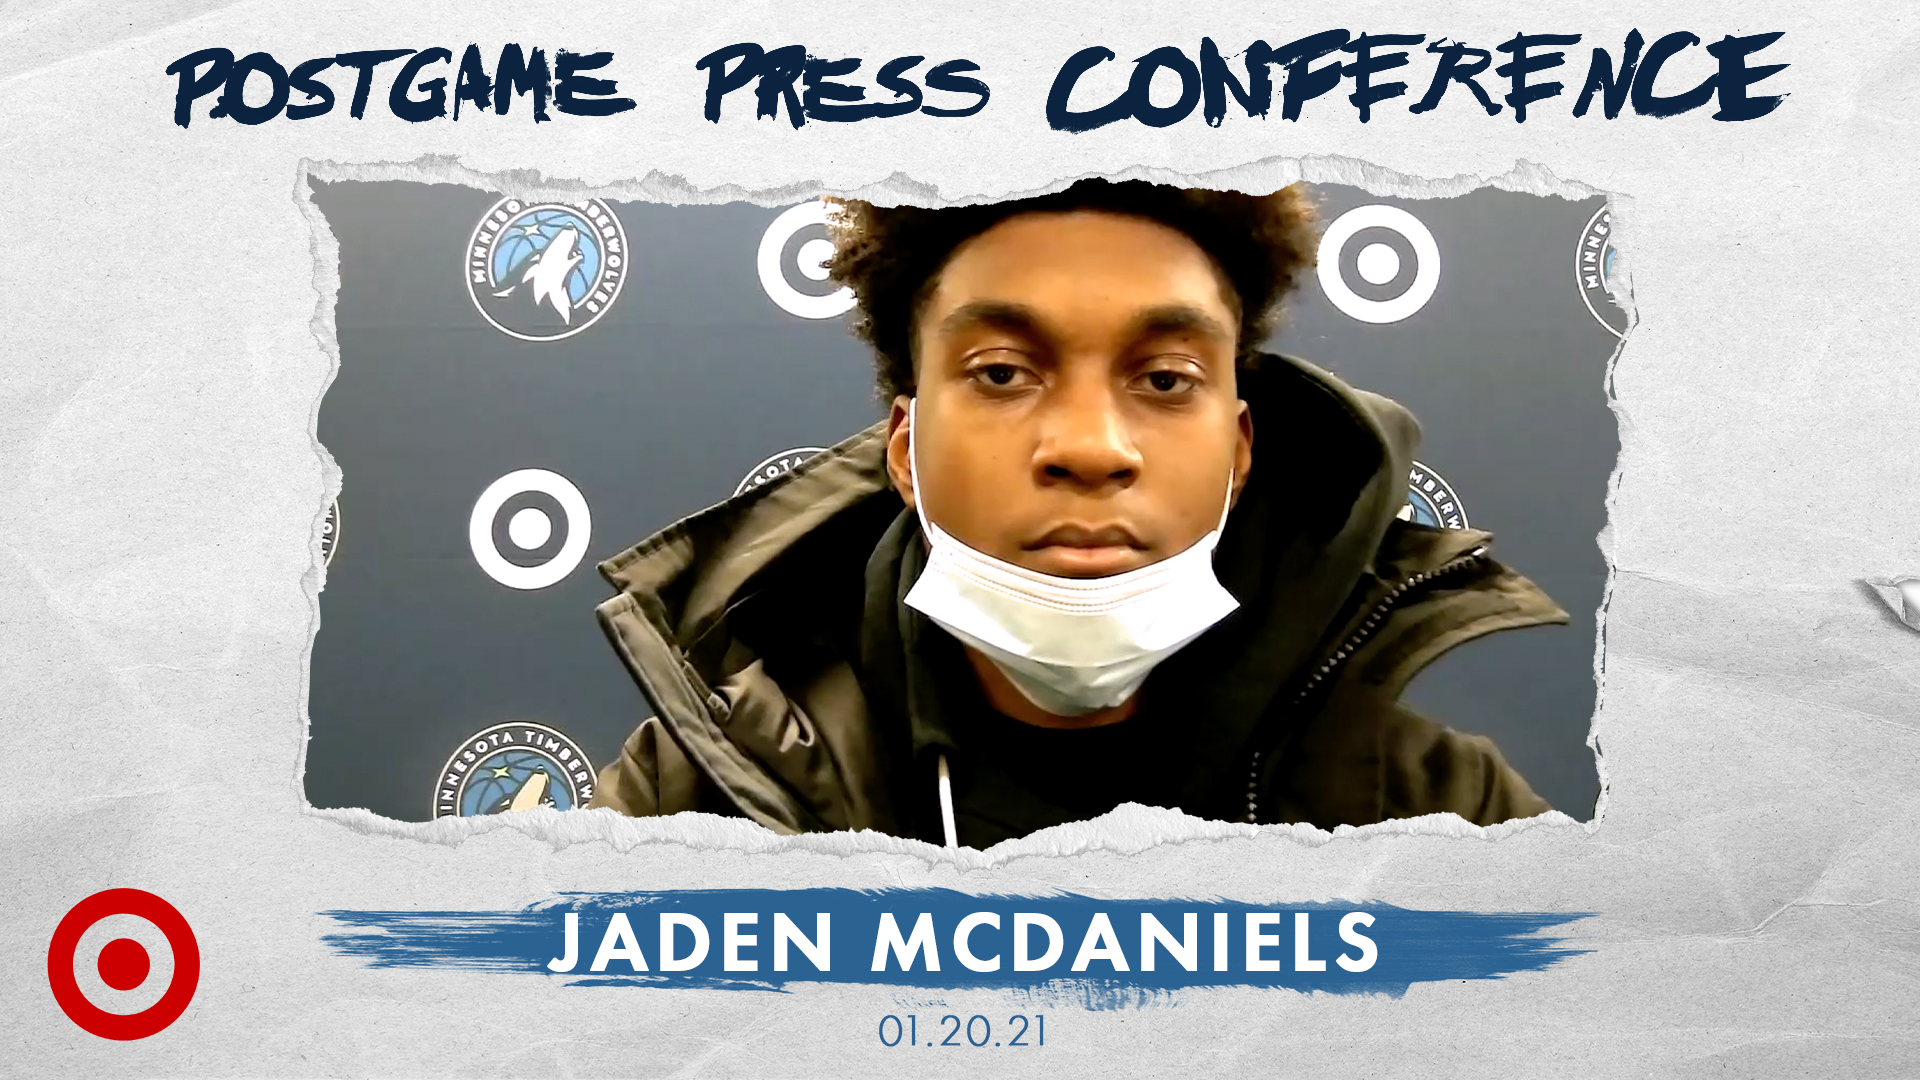 Jaden McDaniels Postgame Press Conference - January 20, 2021